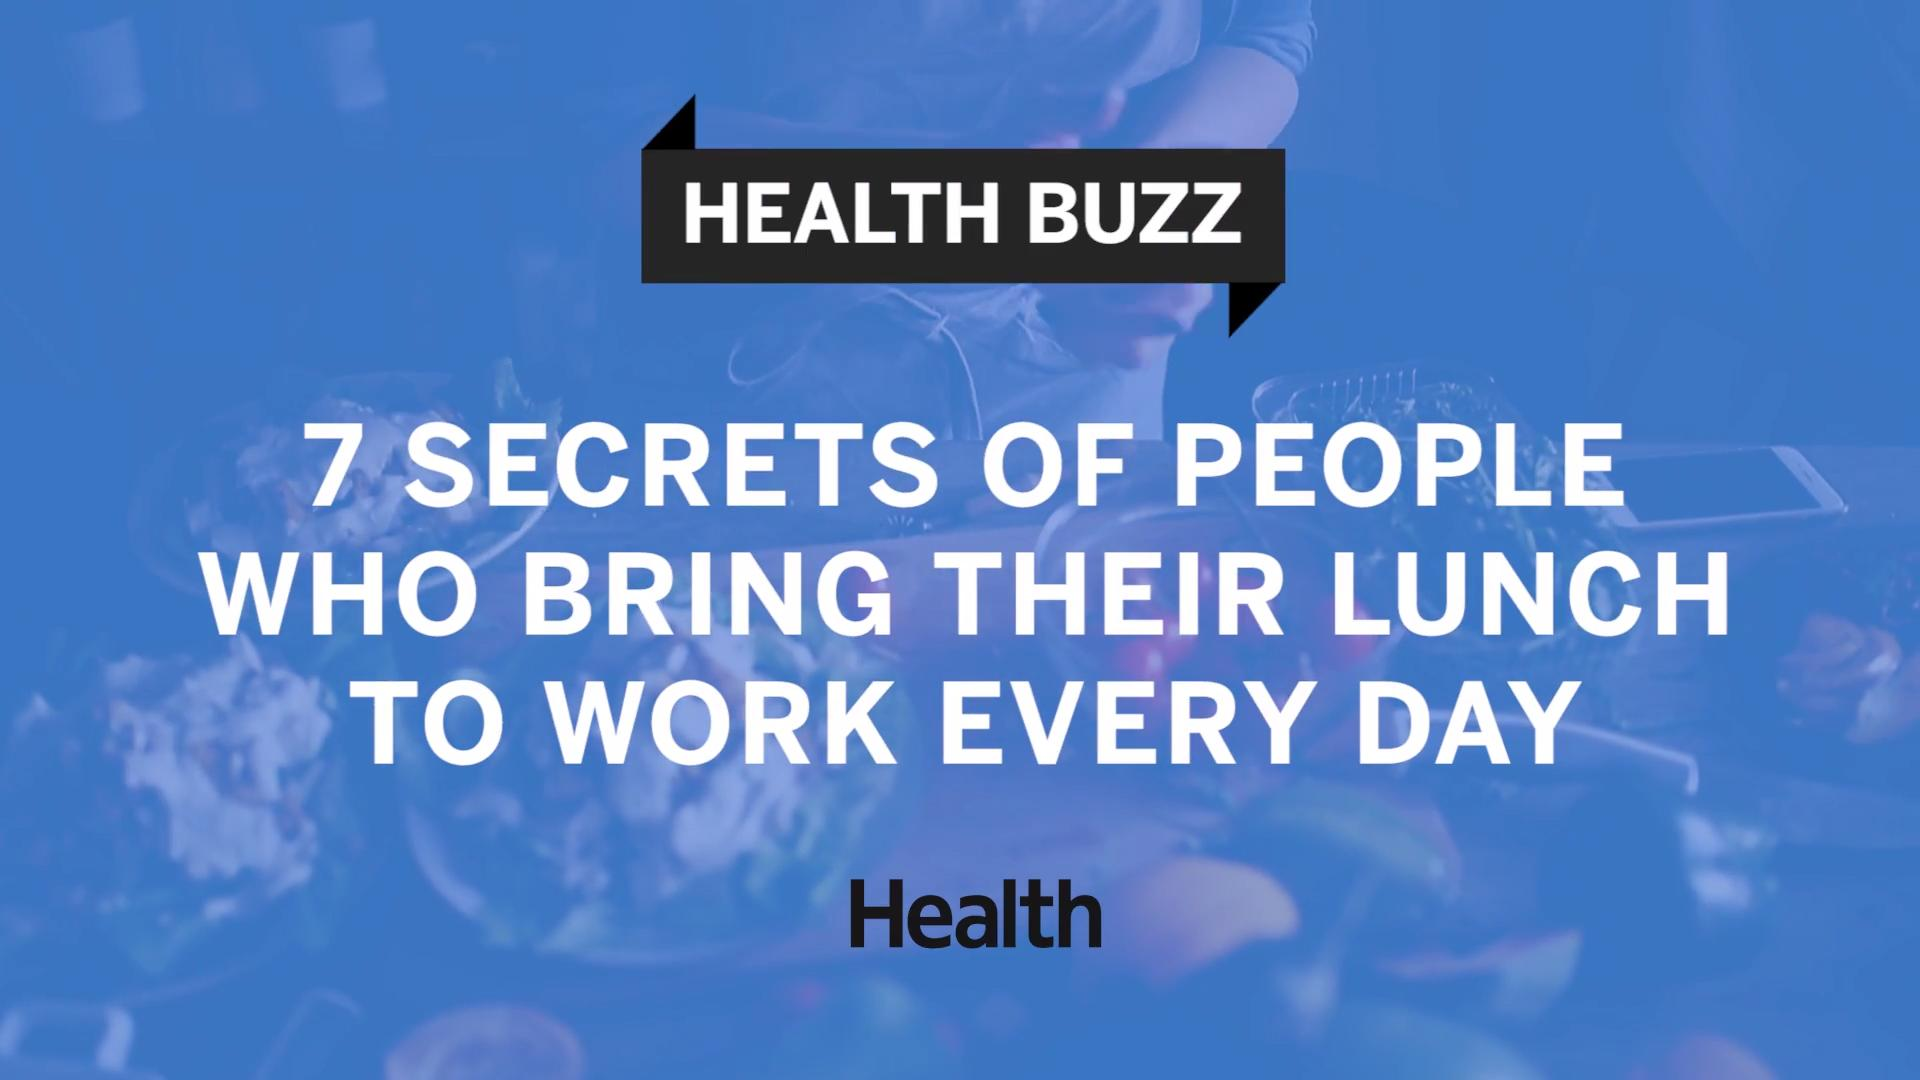 7 Secrets of People Who Bring Their Lunch to Work Every Day